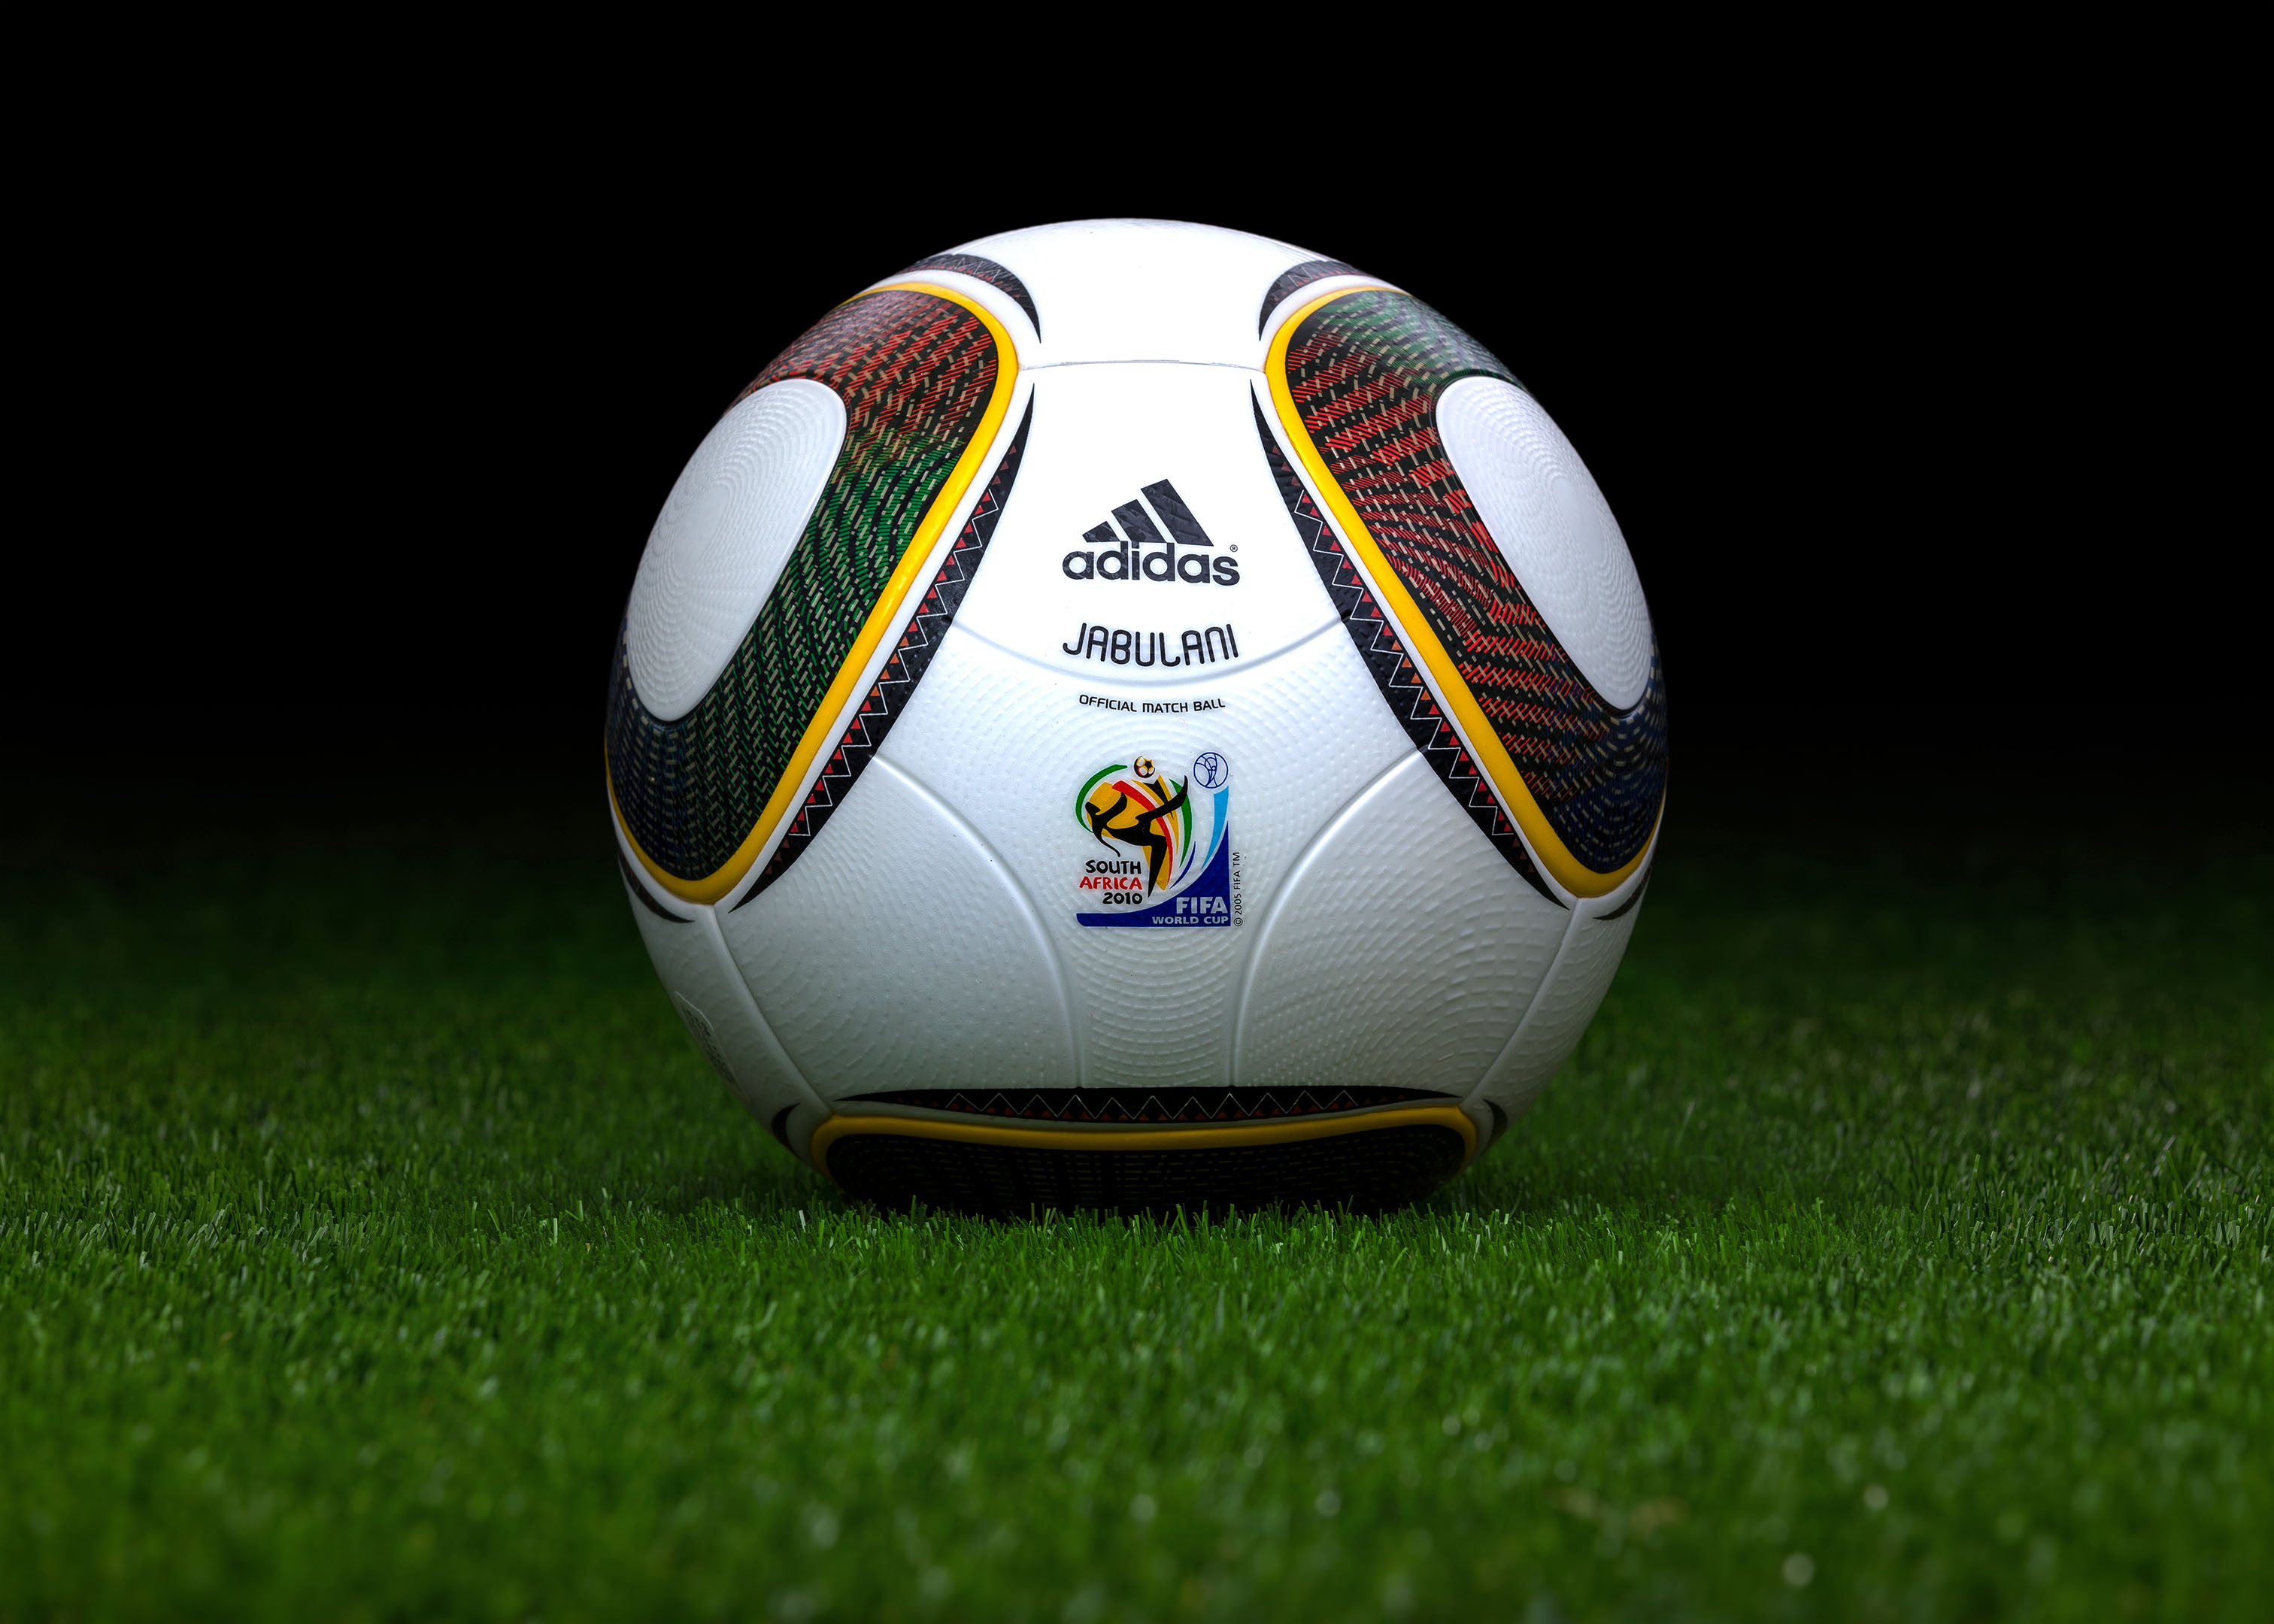 Made in China match ball